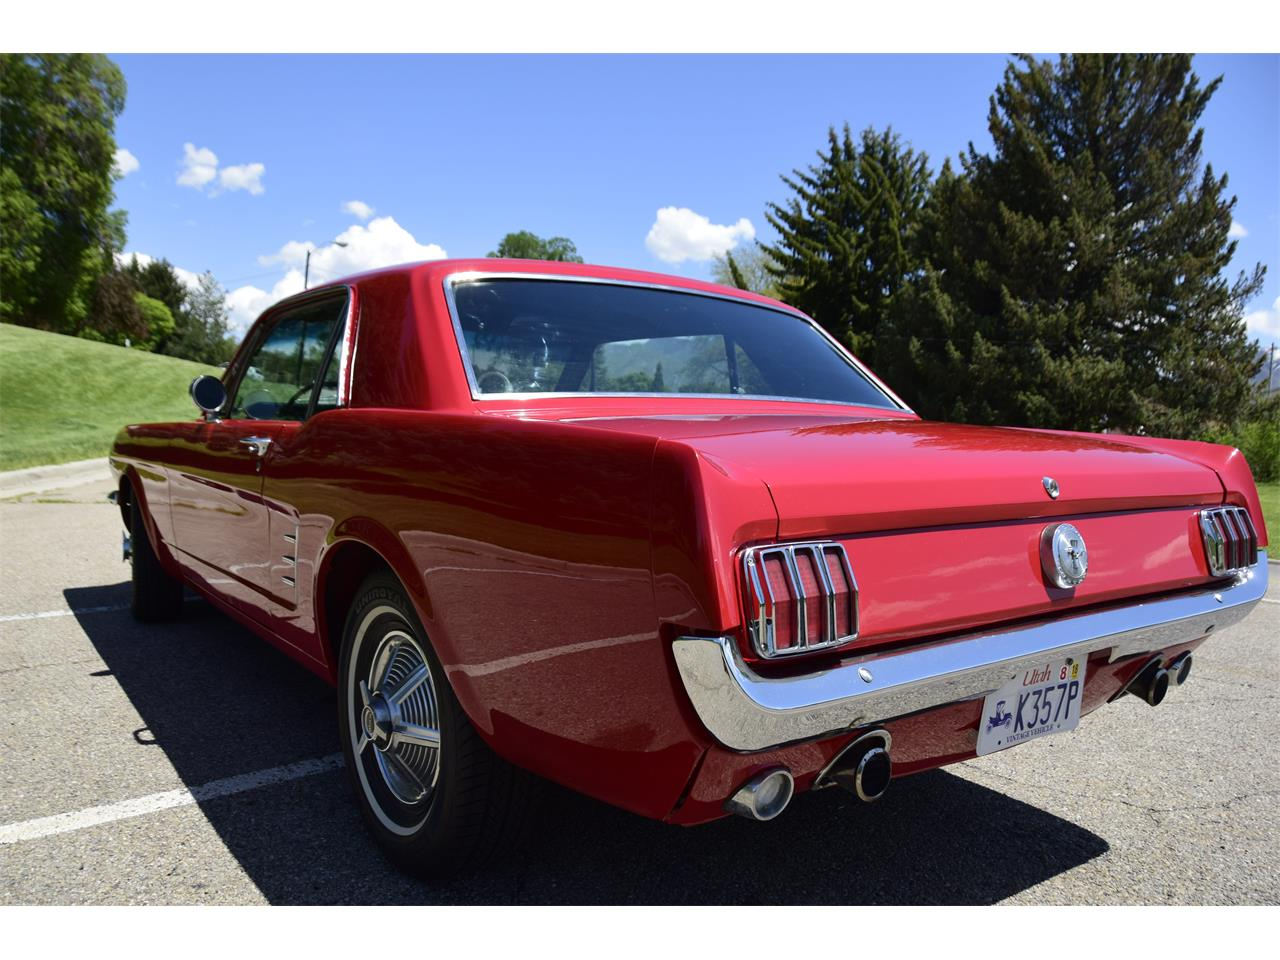 Large Picture of '66 Ford Mustang - $23,900.00 Offered by a Private Seller - QPZ1